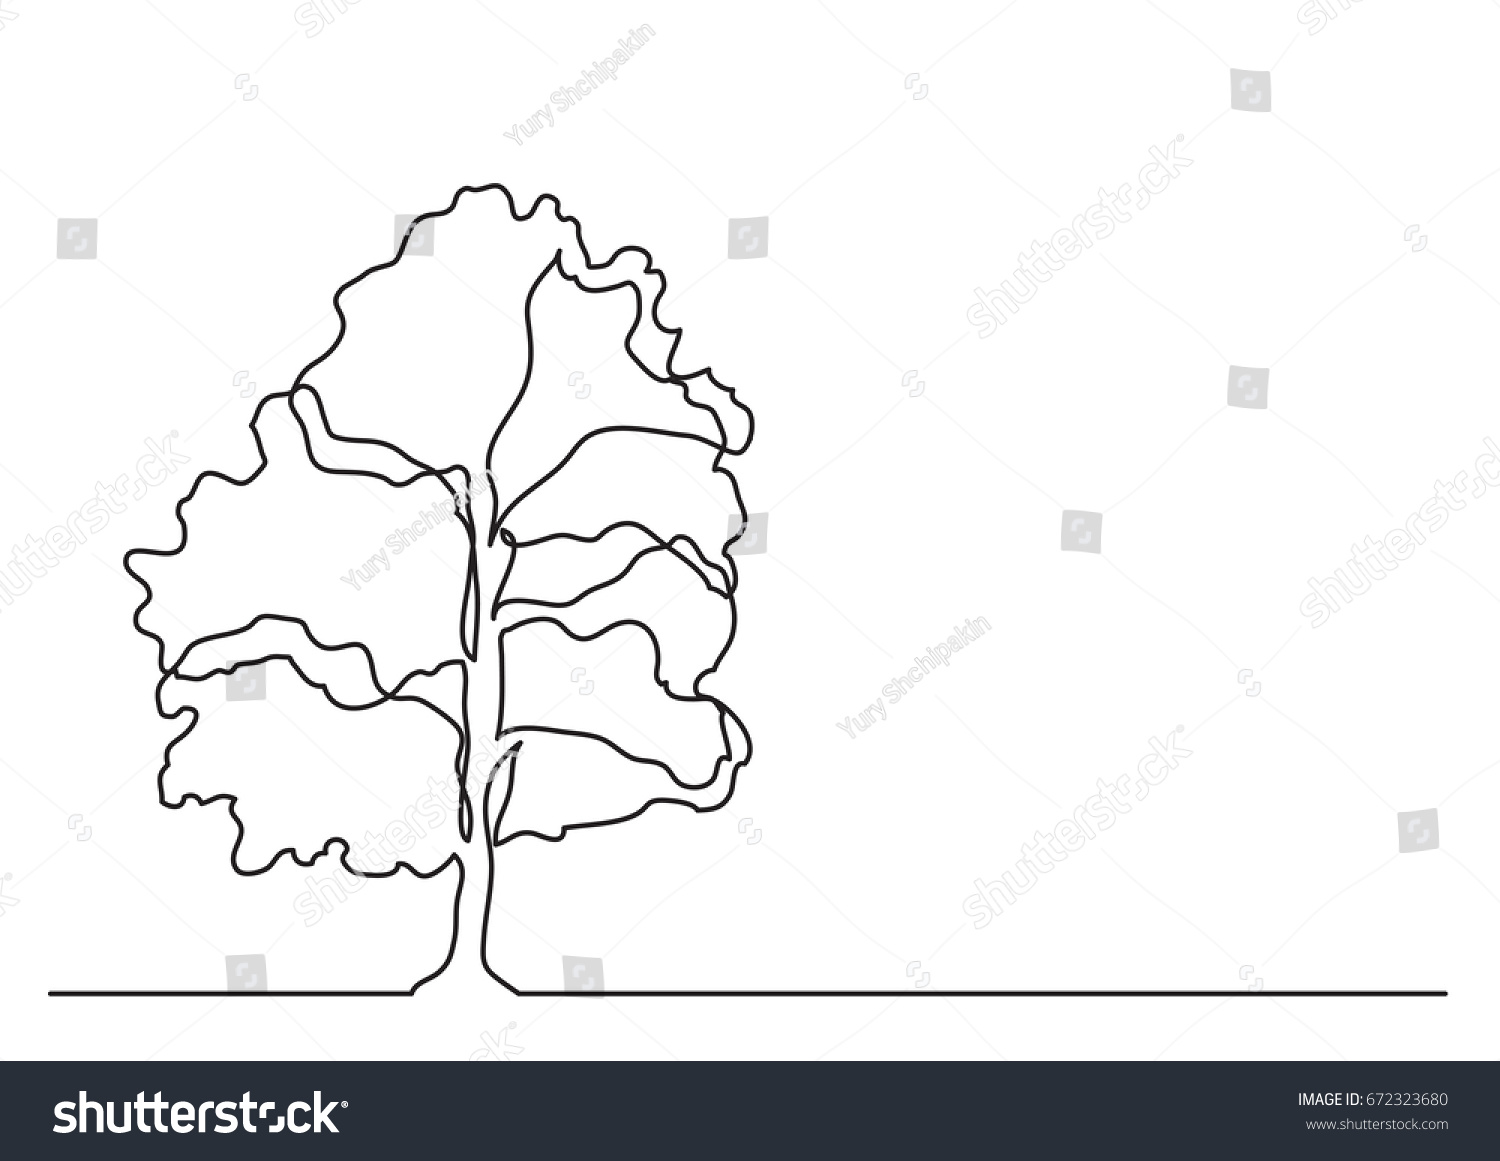 hight resolution of single line drawing of tree